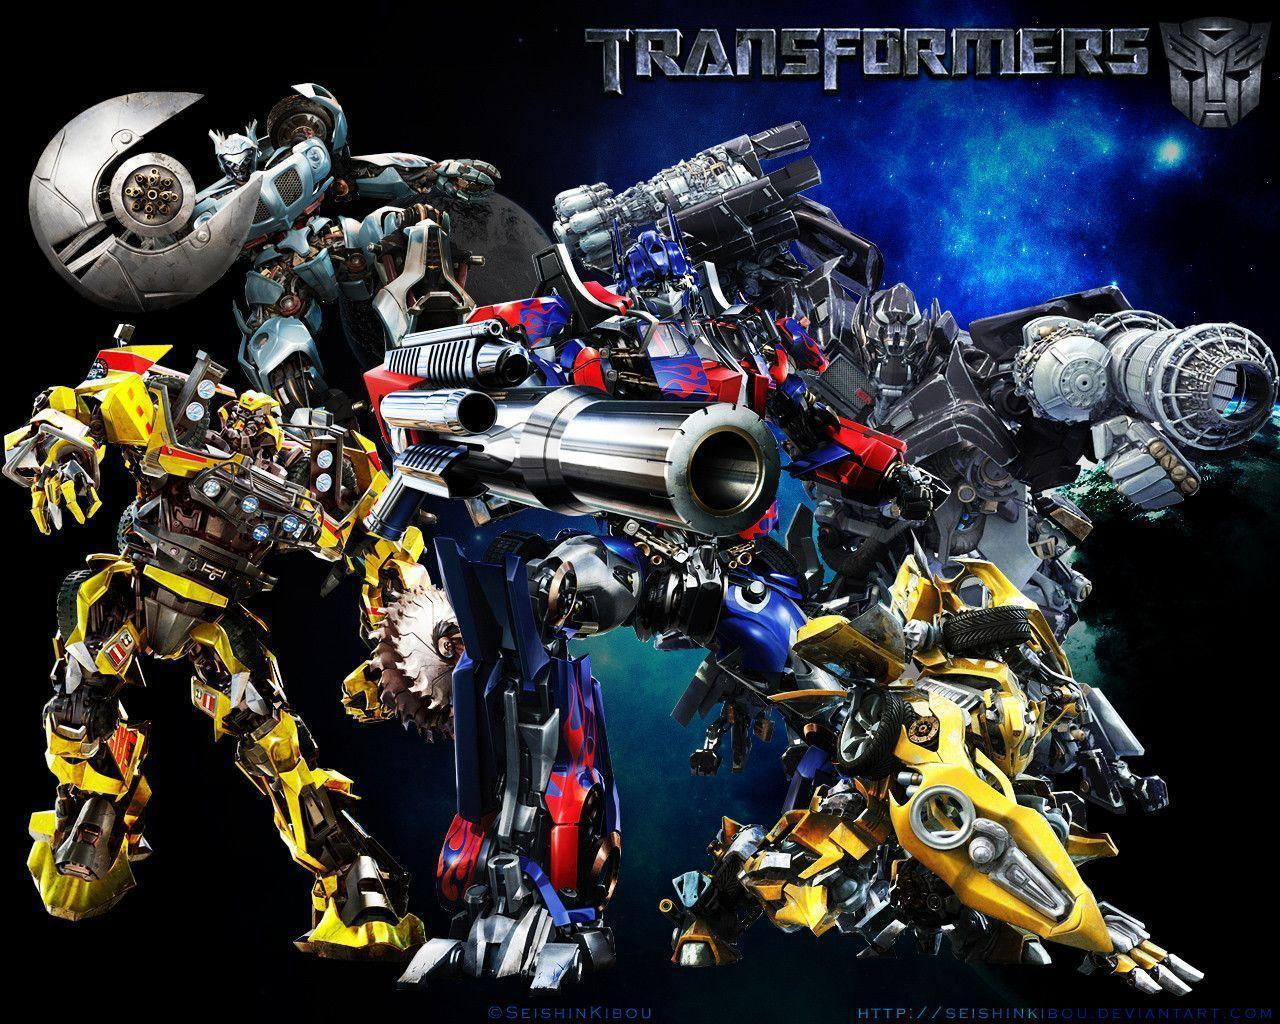 Transformers Autobots Wallpapers - Wallpaper Cave